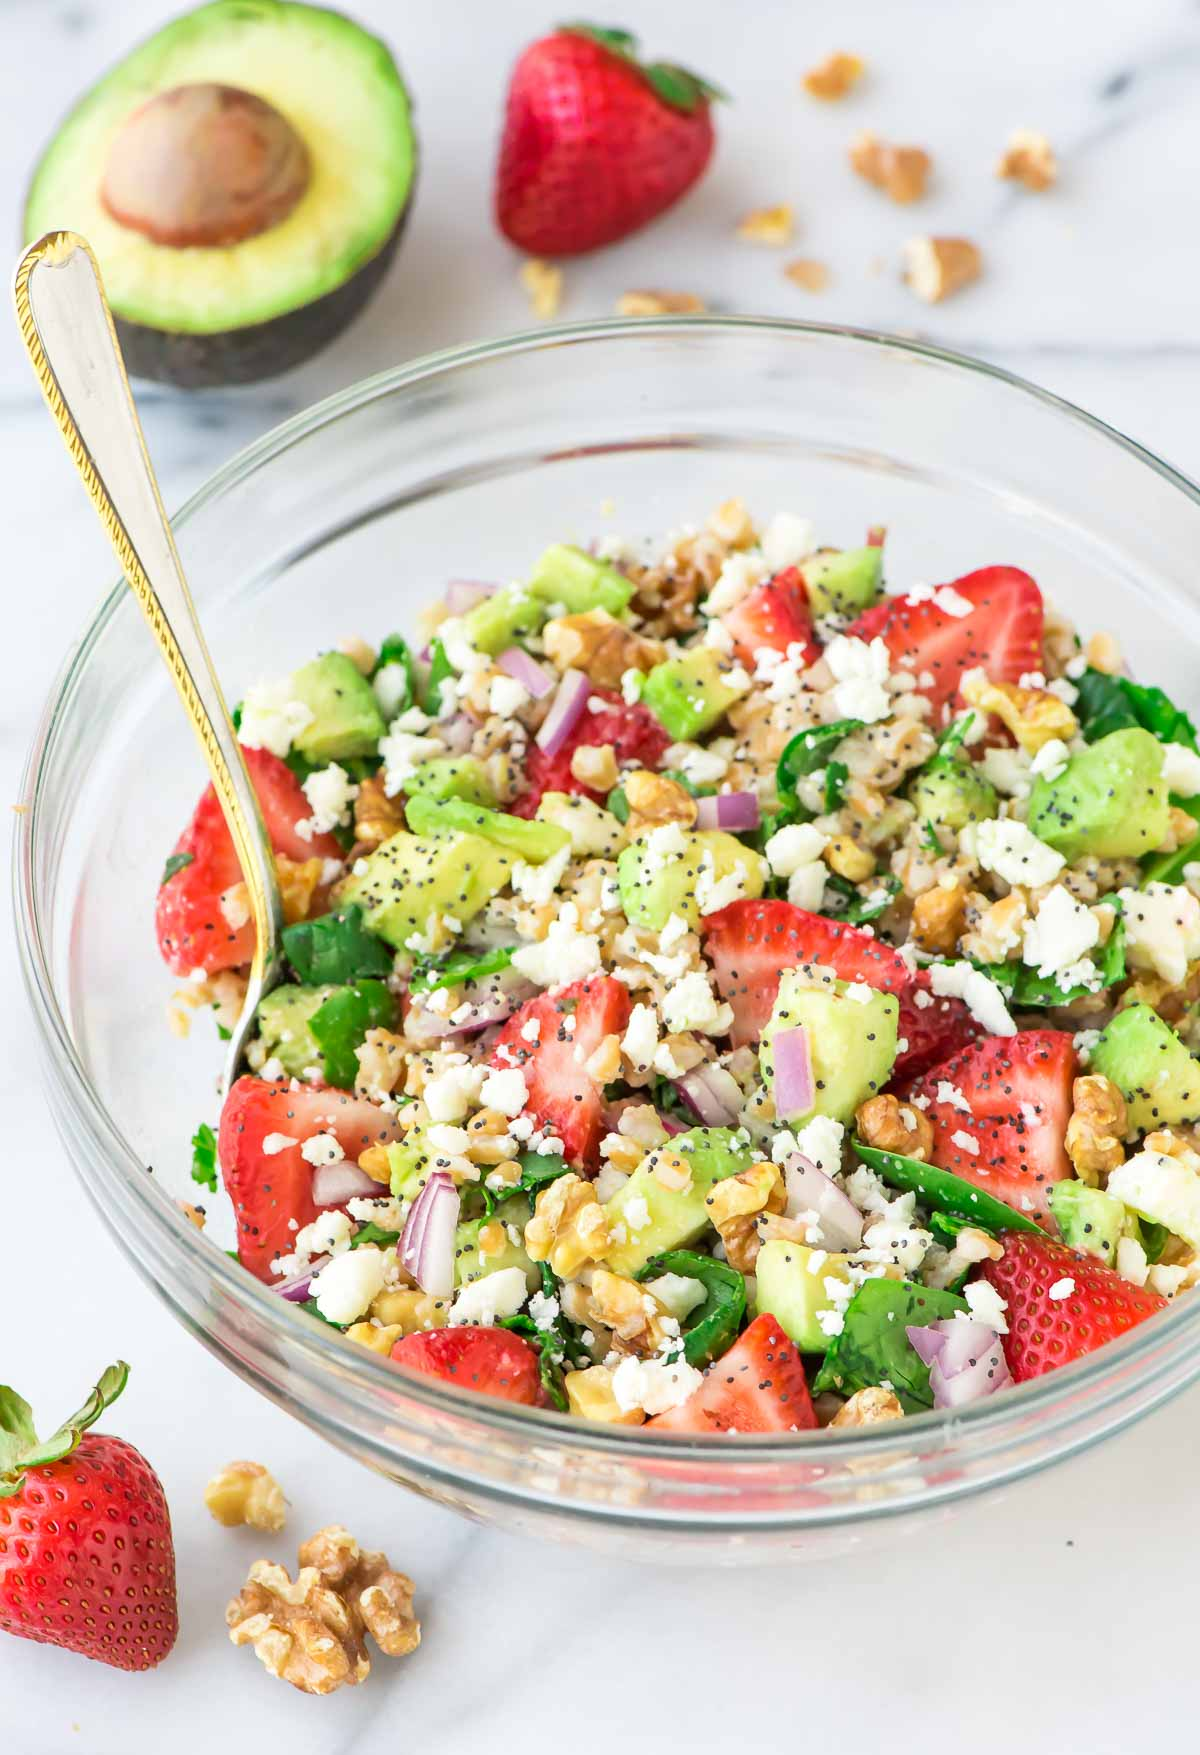 Strawberry Farro Salad with Avocado & Feta - by Well Plated